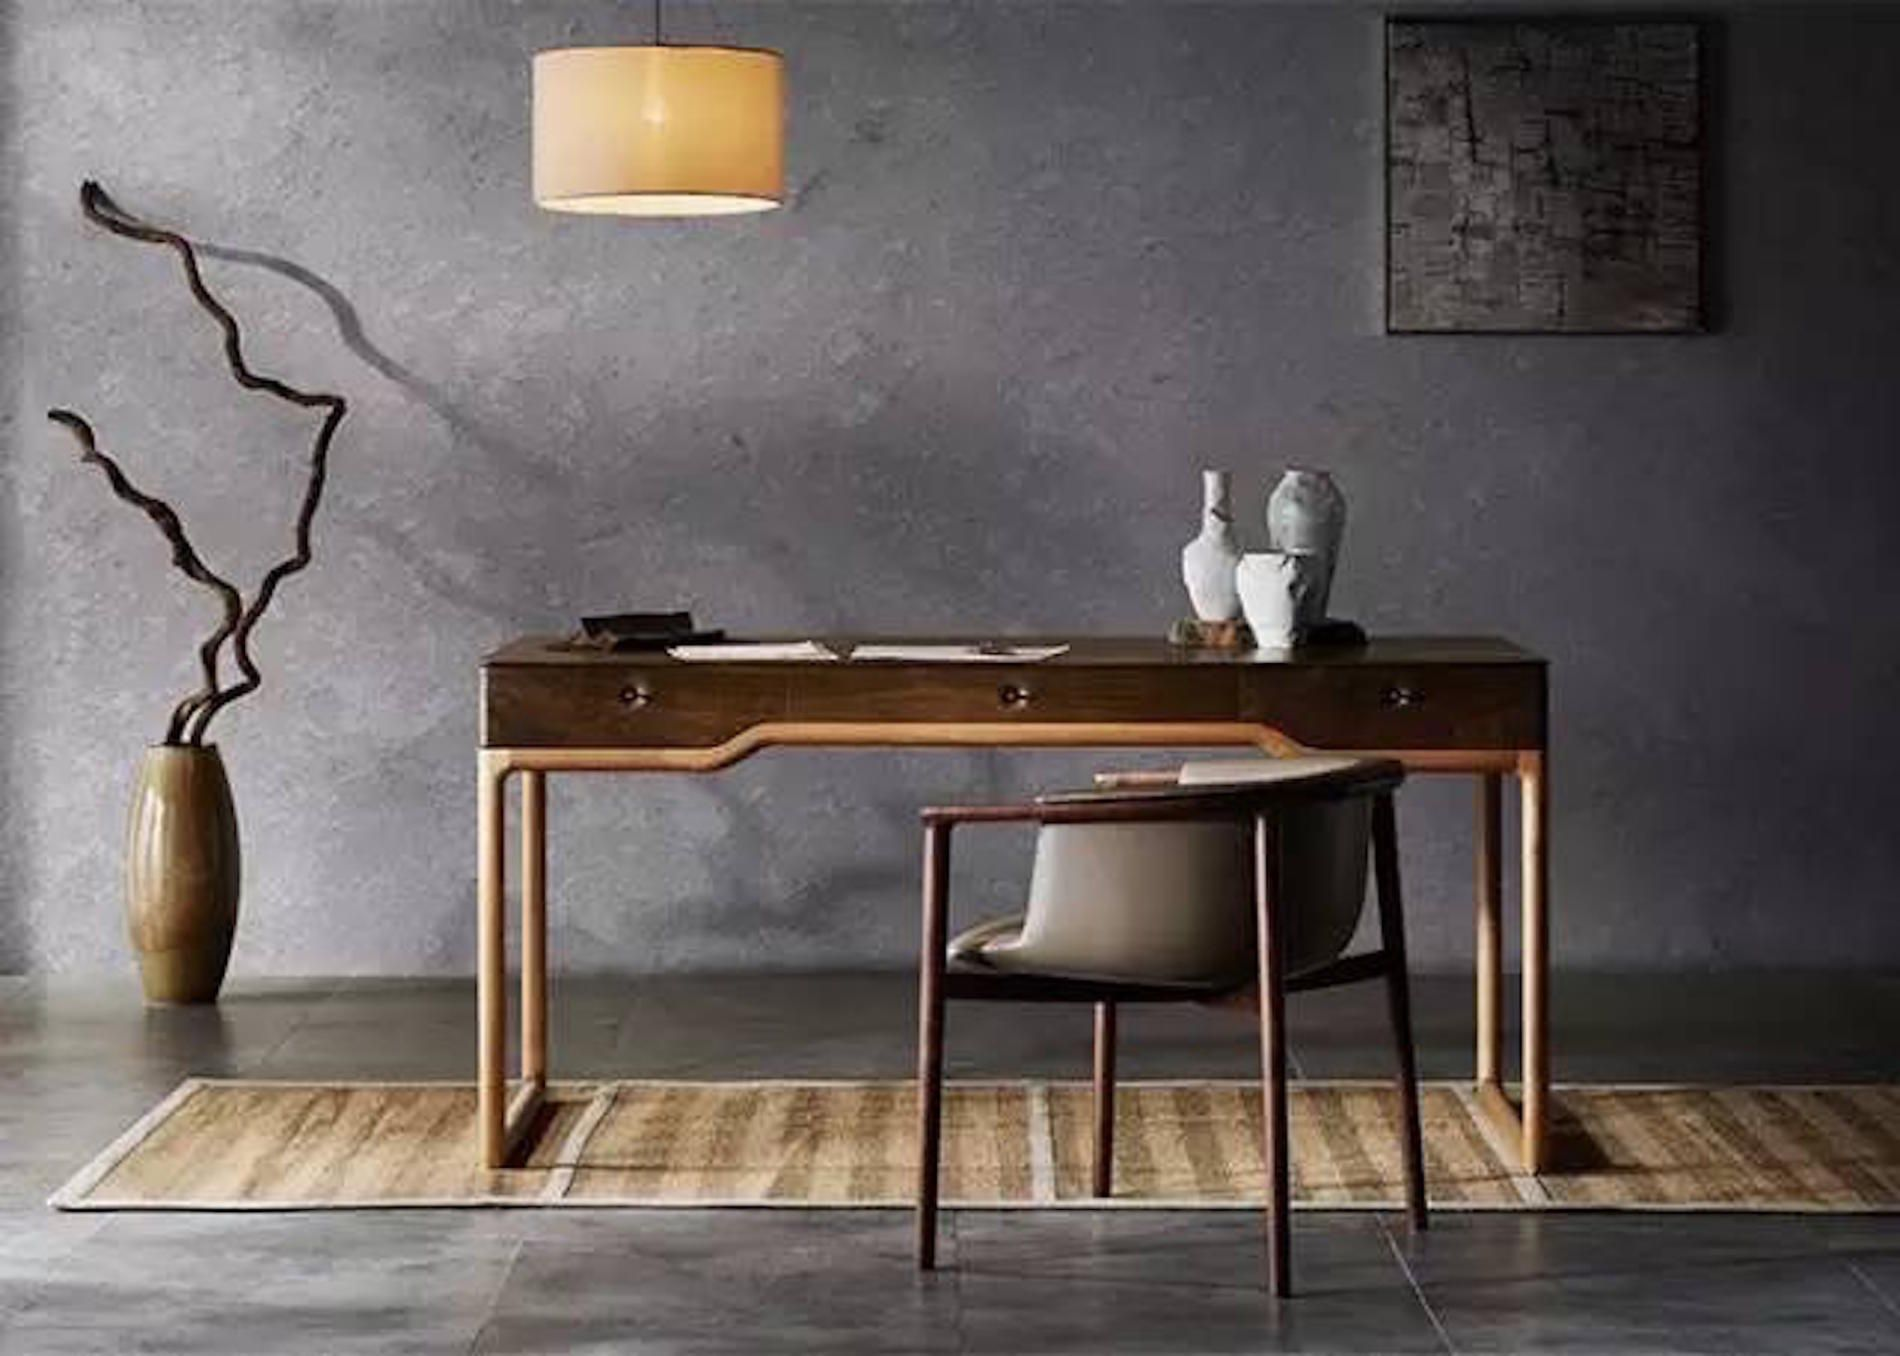 Wood Design Furniture Neo Chinese Style Furniture New Chinese Design Chinese Style Interior Chinese Interior Modern Chinese Interior